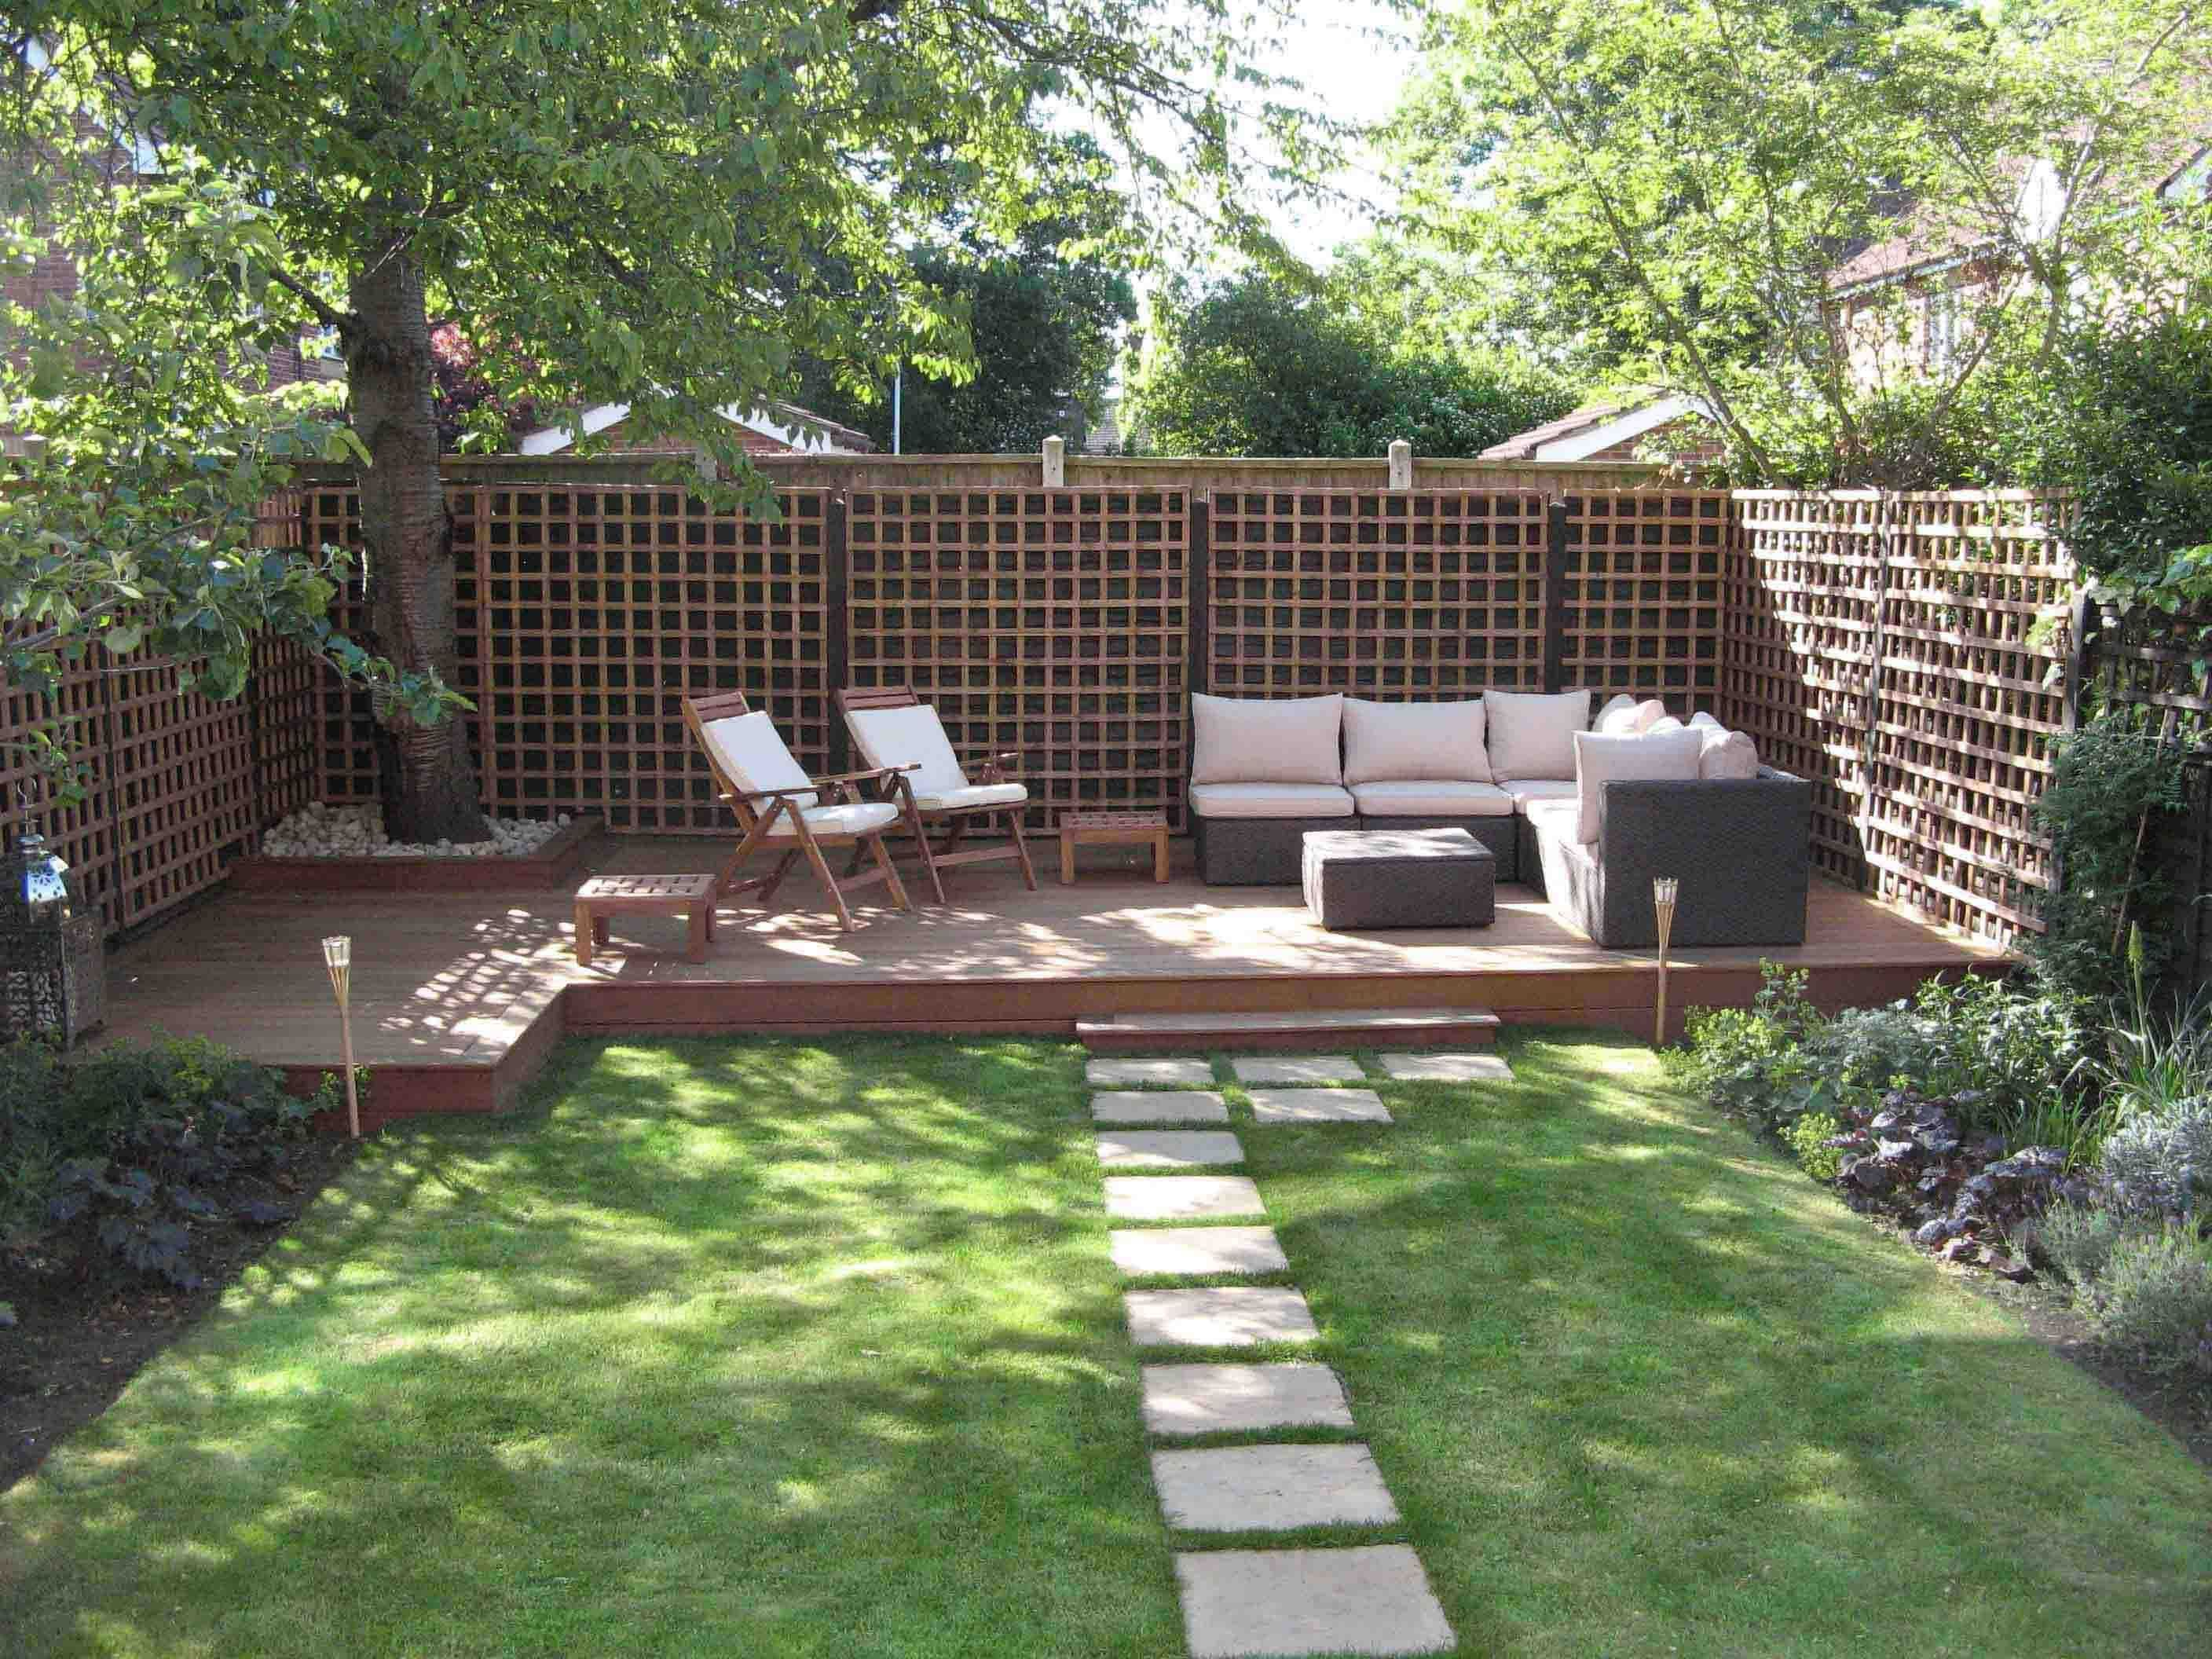 Awesome Backyard Deck Ideas for Outdoor Lounge Space httpwww